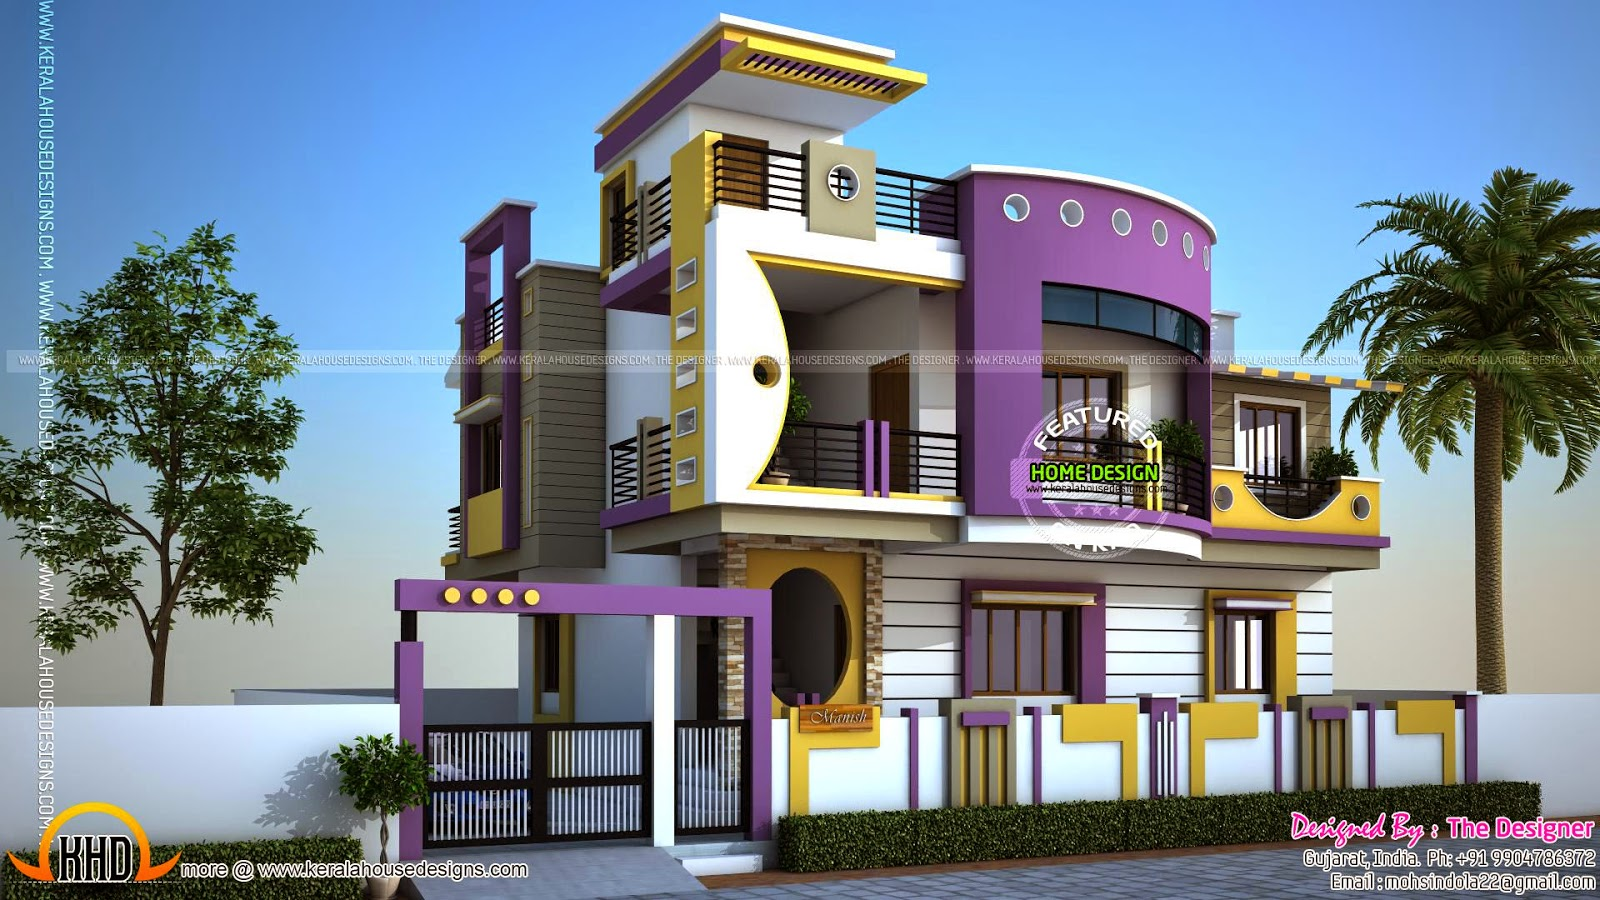 House exterior designs in contemporary style kerala home for Front house entrance design ideas